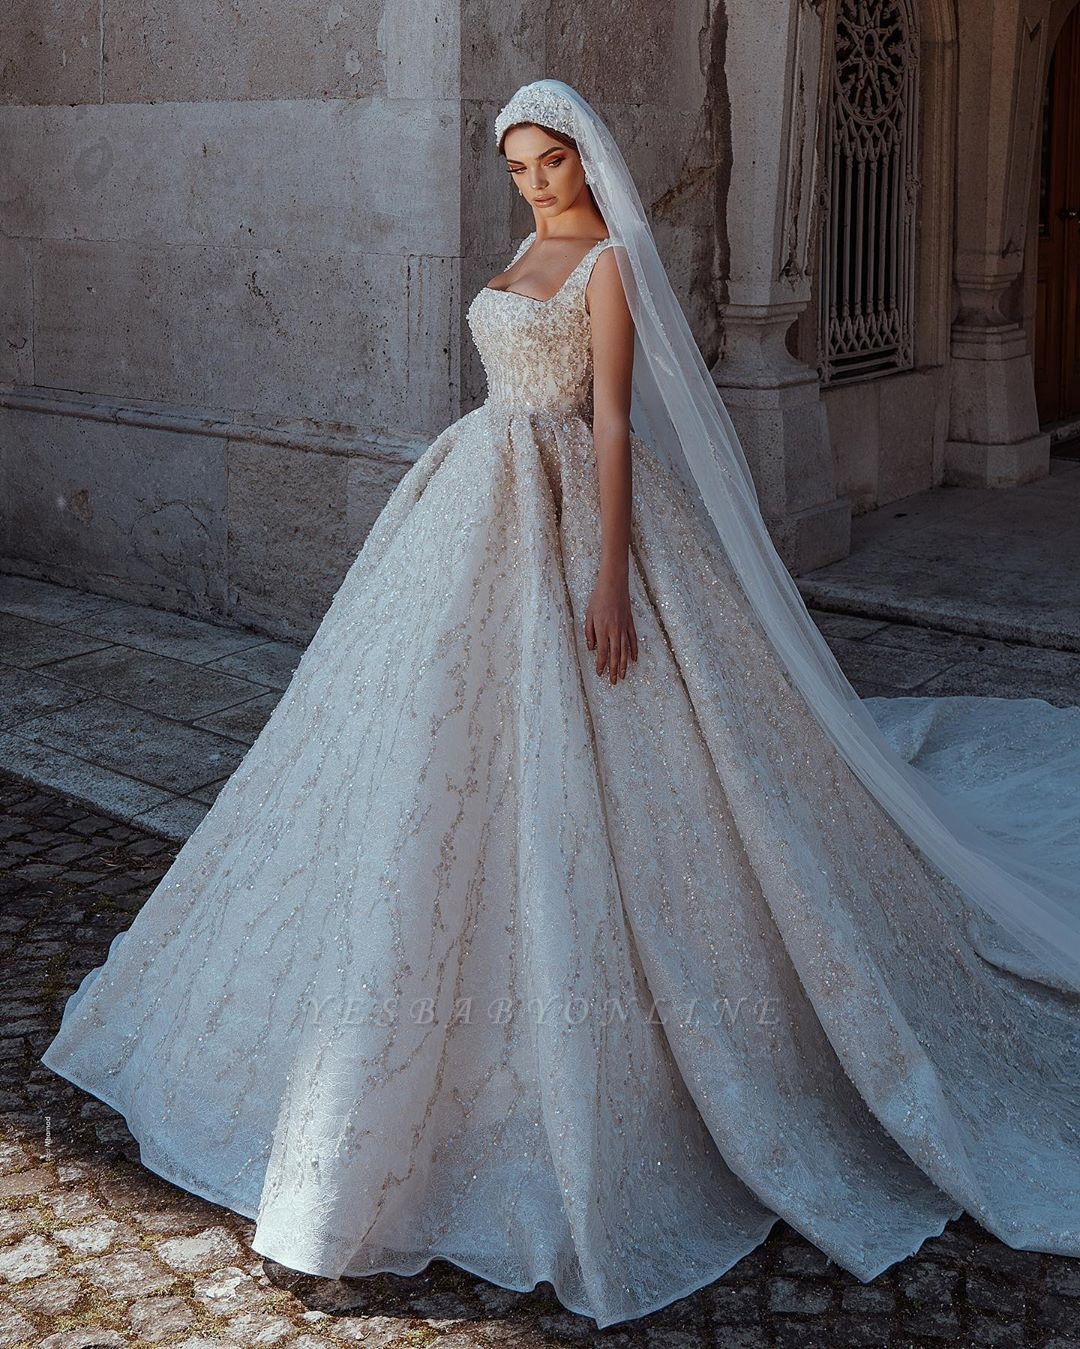 Gorgeous Straps Backless Crystal Sequined Pleated Ball Gown Wedding Dresses Yesbabyonline Com